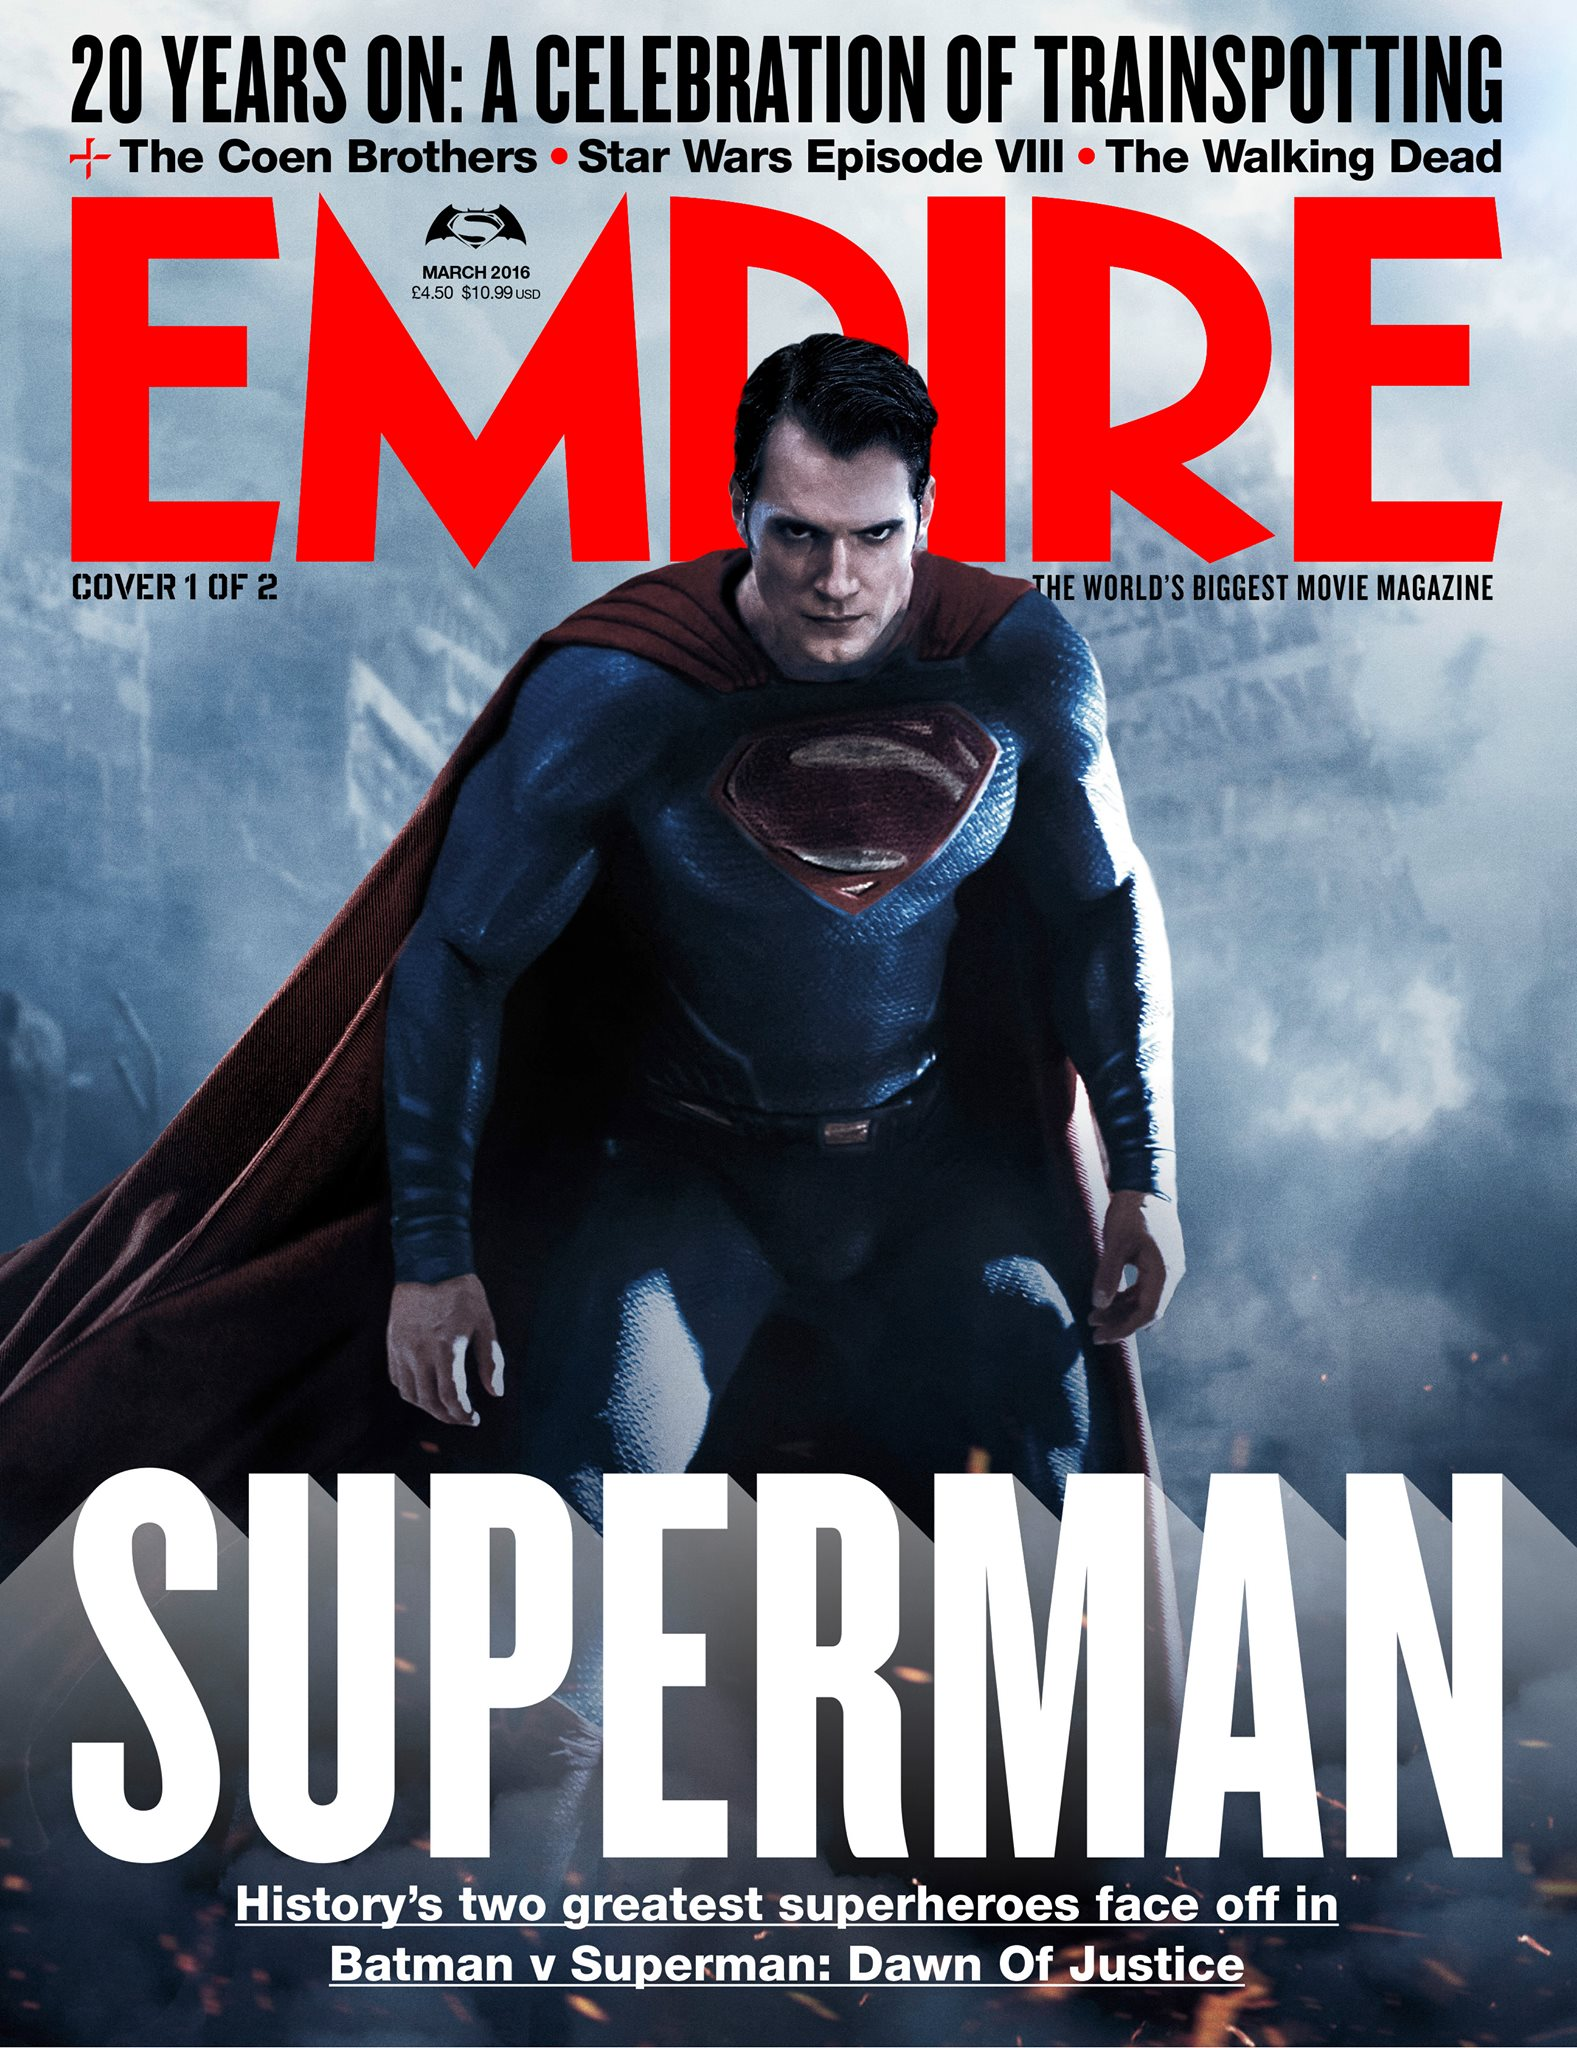 Batman v Superman: la copertina di Empire dedicata a Superman